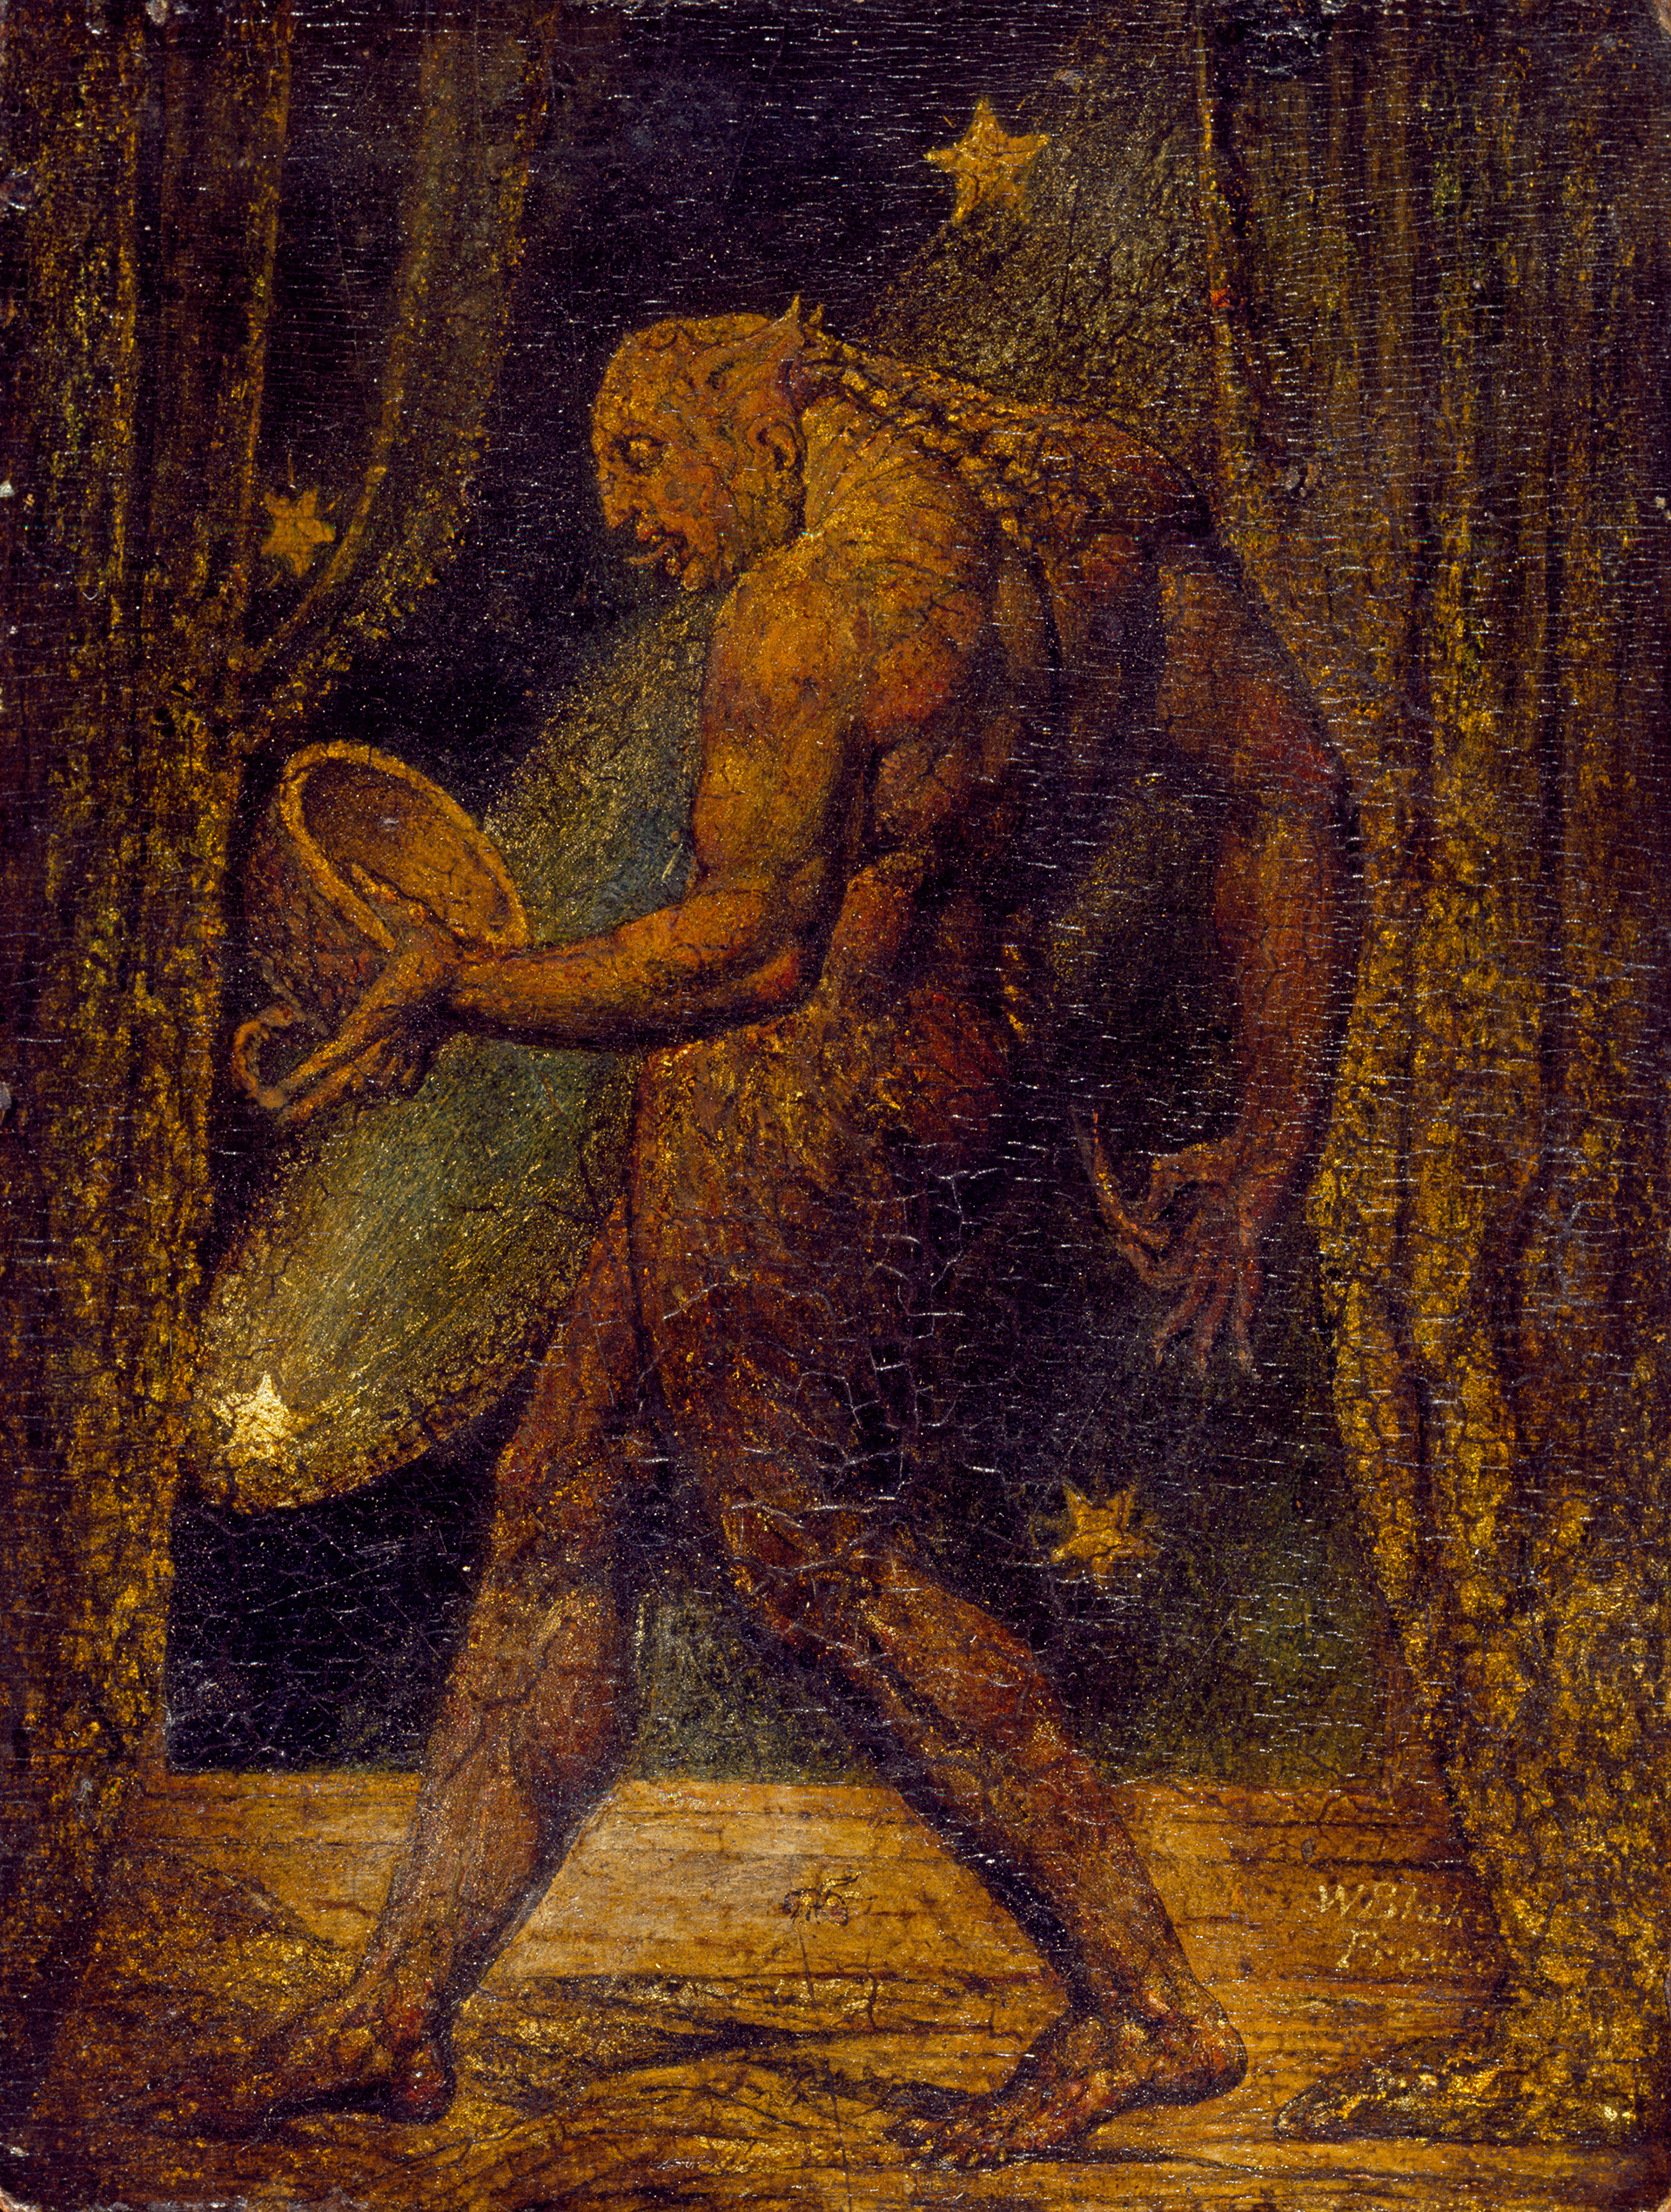 William Blake, The Ghost of a Flea 1820| Largest survey show of work by William Blake | STIRworld